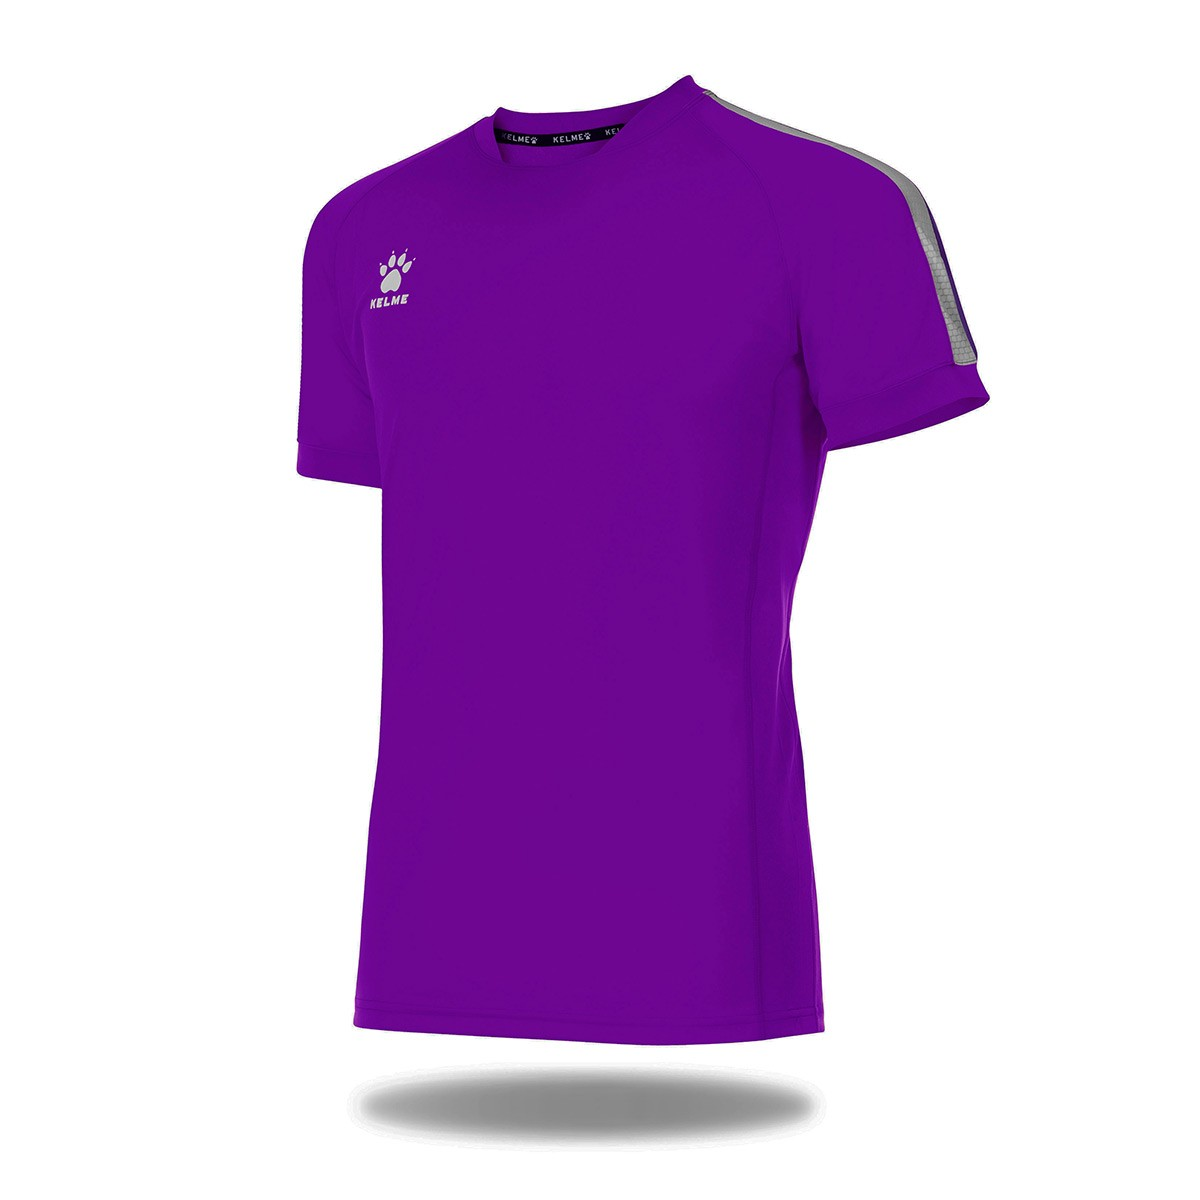 547c9f44fd1 Jersey Kelme Global m c Purple - Leaked soccer